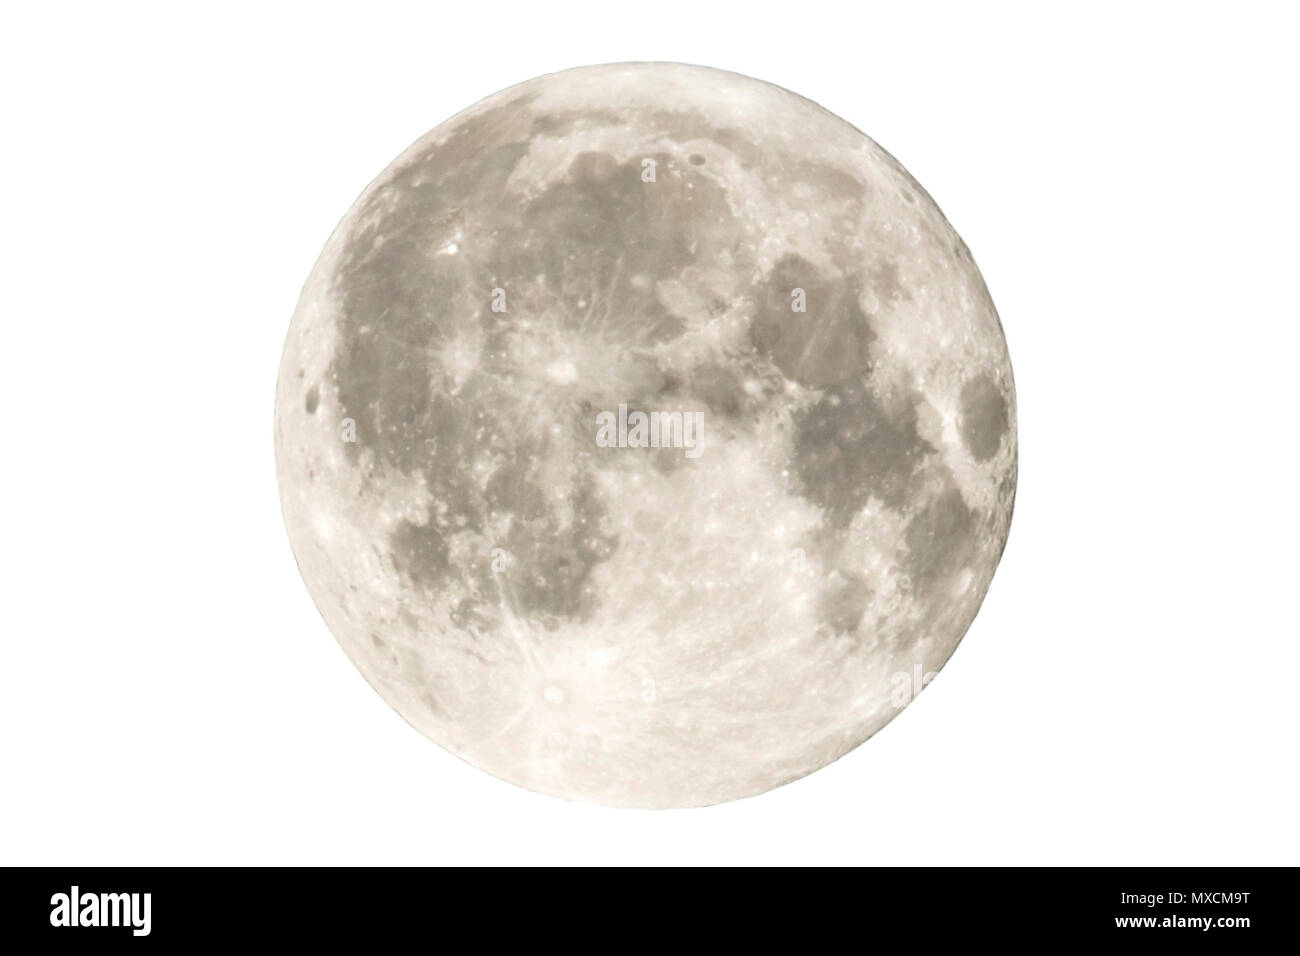 Earth's permanent natural satellite - the Moon. High resolution 6 mp image. Isolated on a white background. - Stock Image